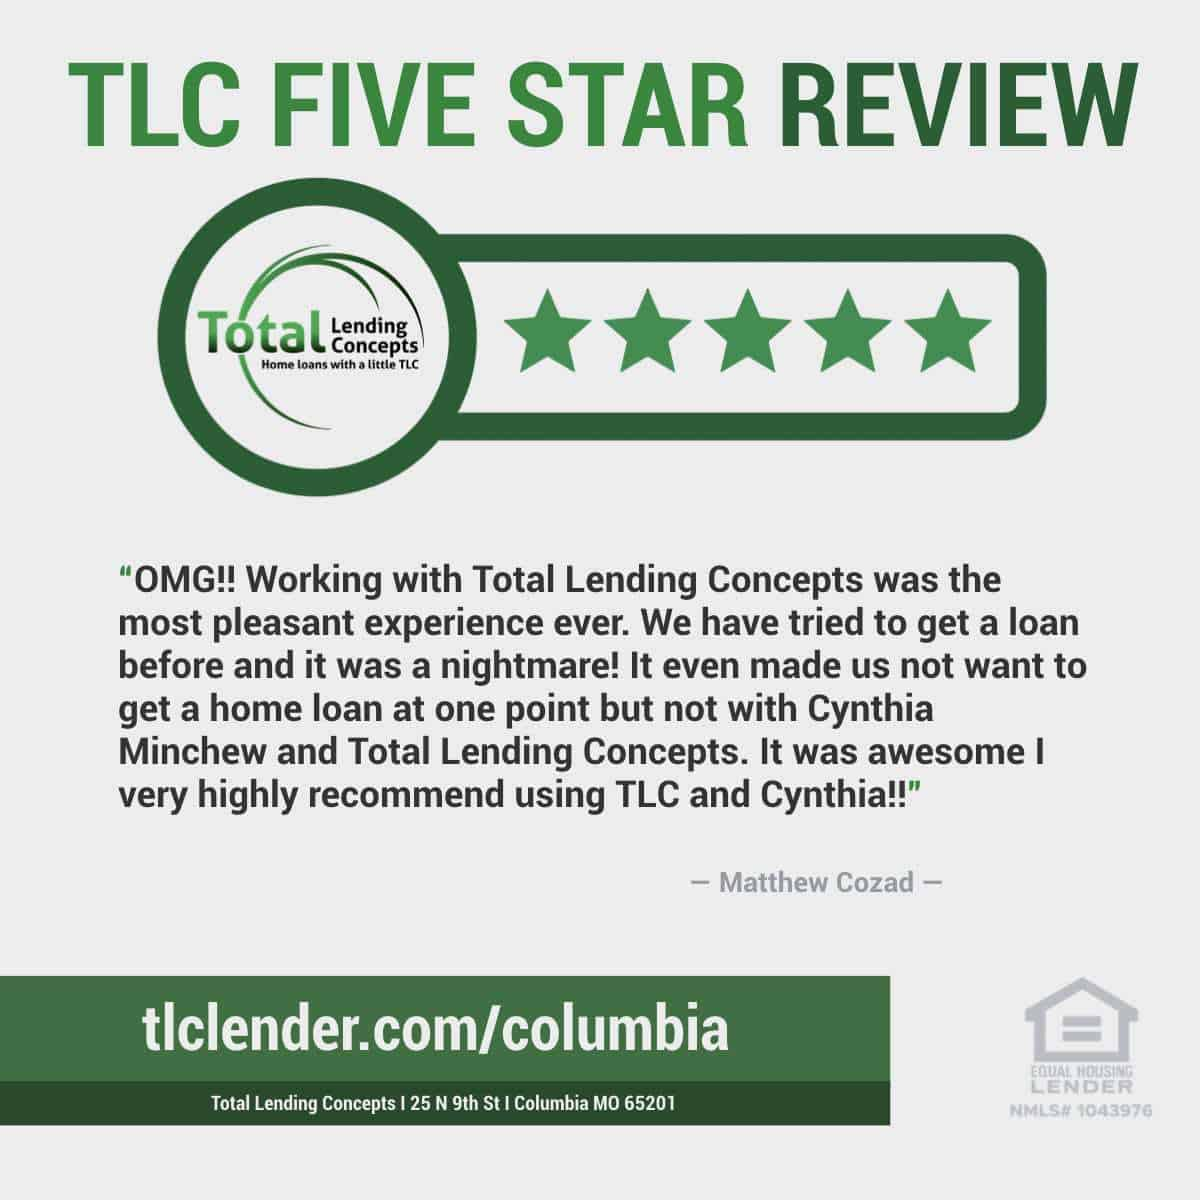 Total-Lending-Concepts-Five-Star-Review-Matthew-Cozad-in-Columbia-Missouri-for-Cynthia-Minchew-House-Mortgage